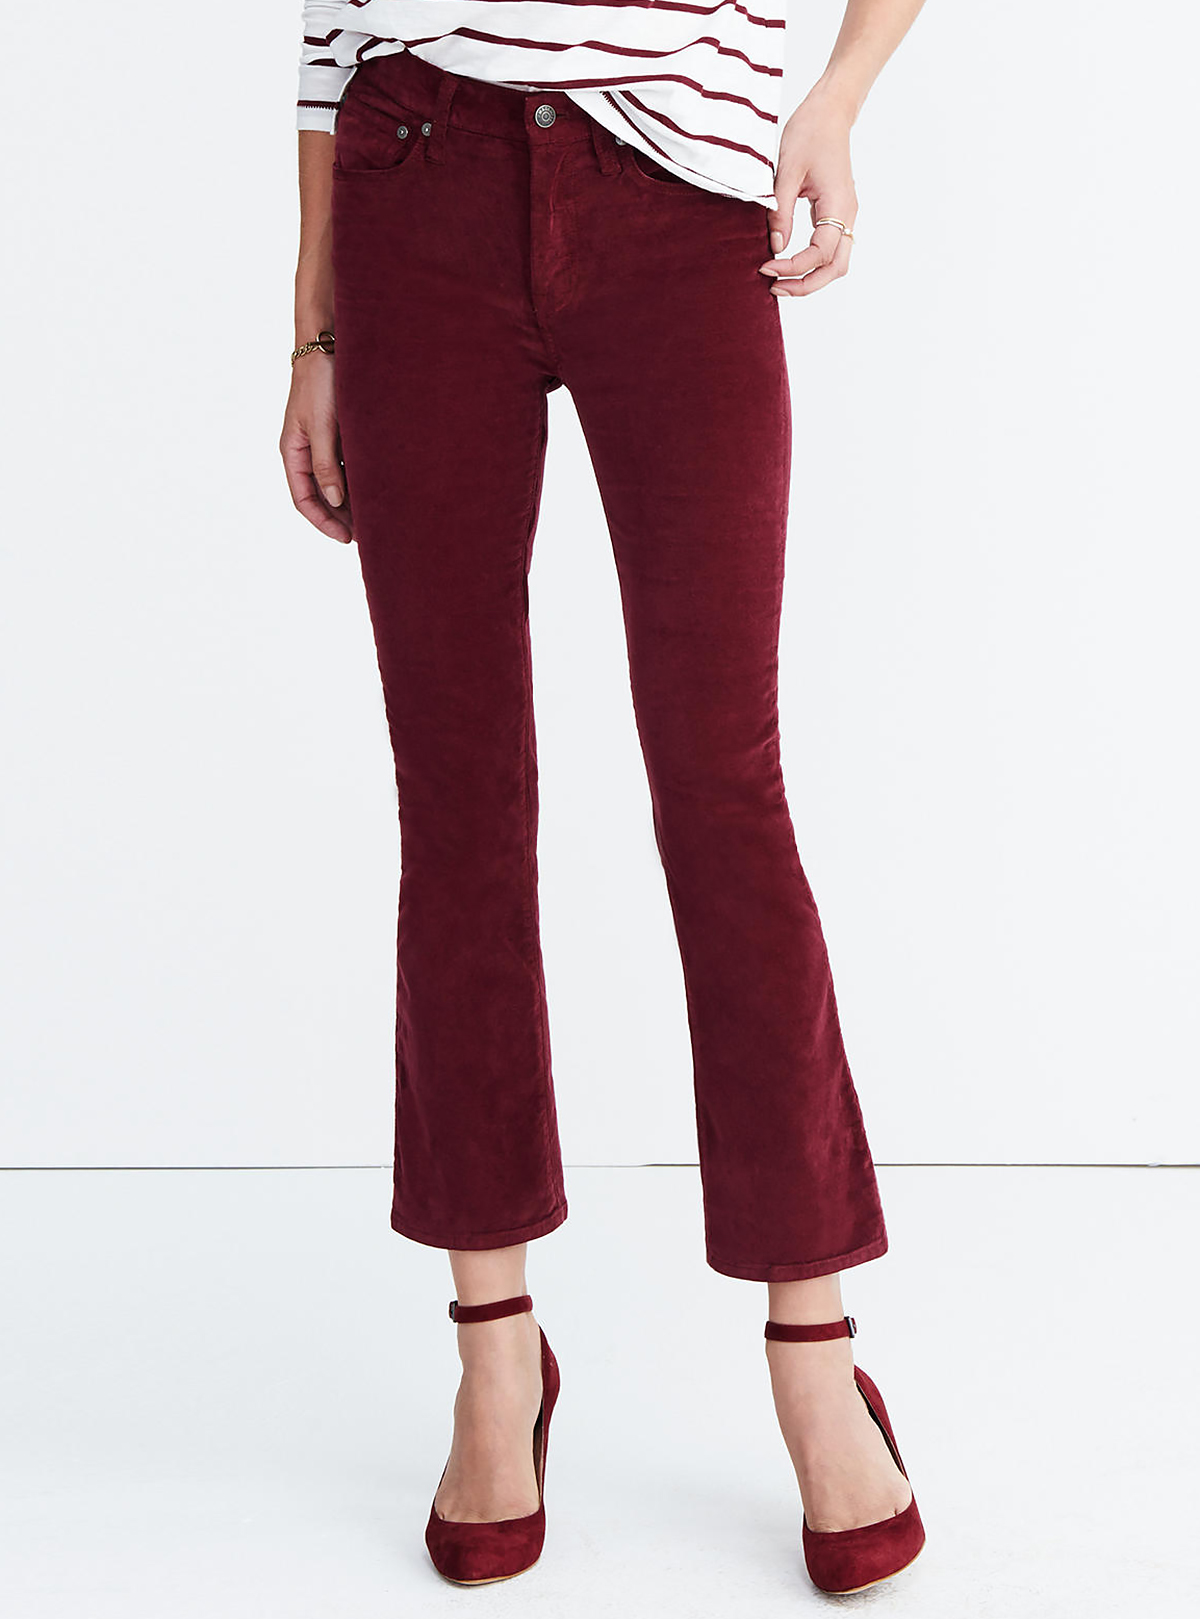 Madewell red, cropped flare velvet pants